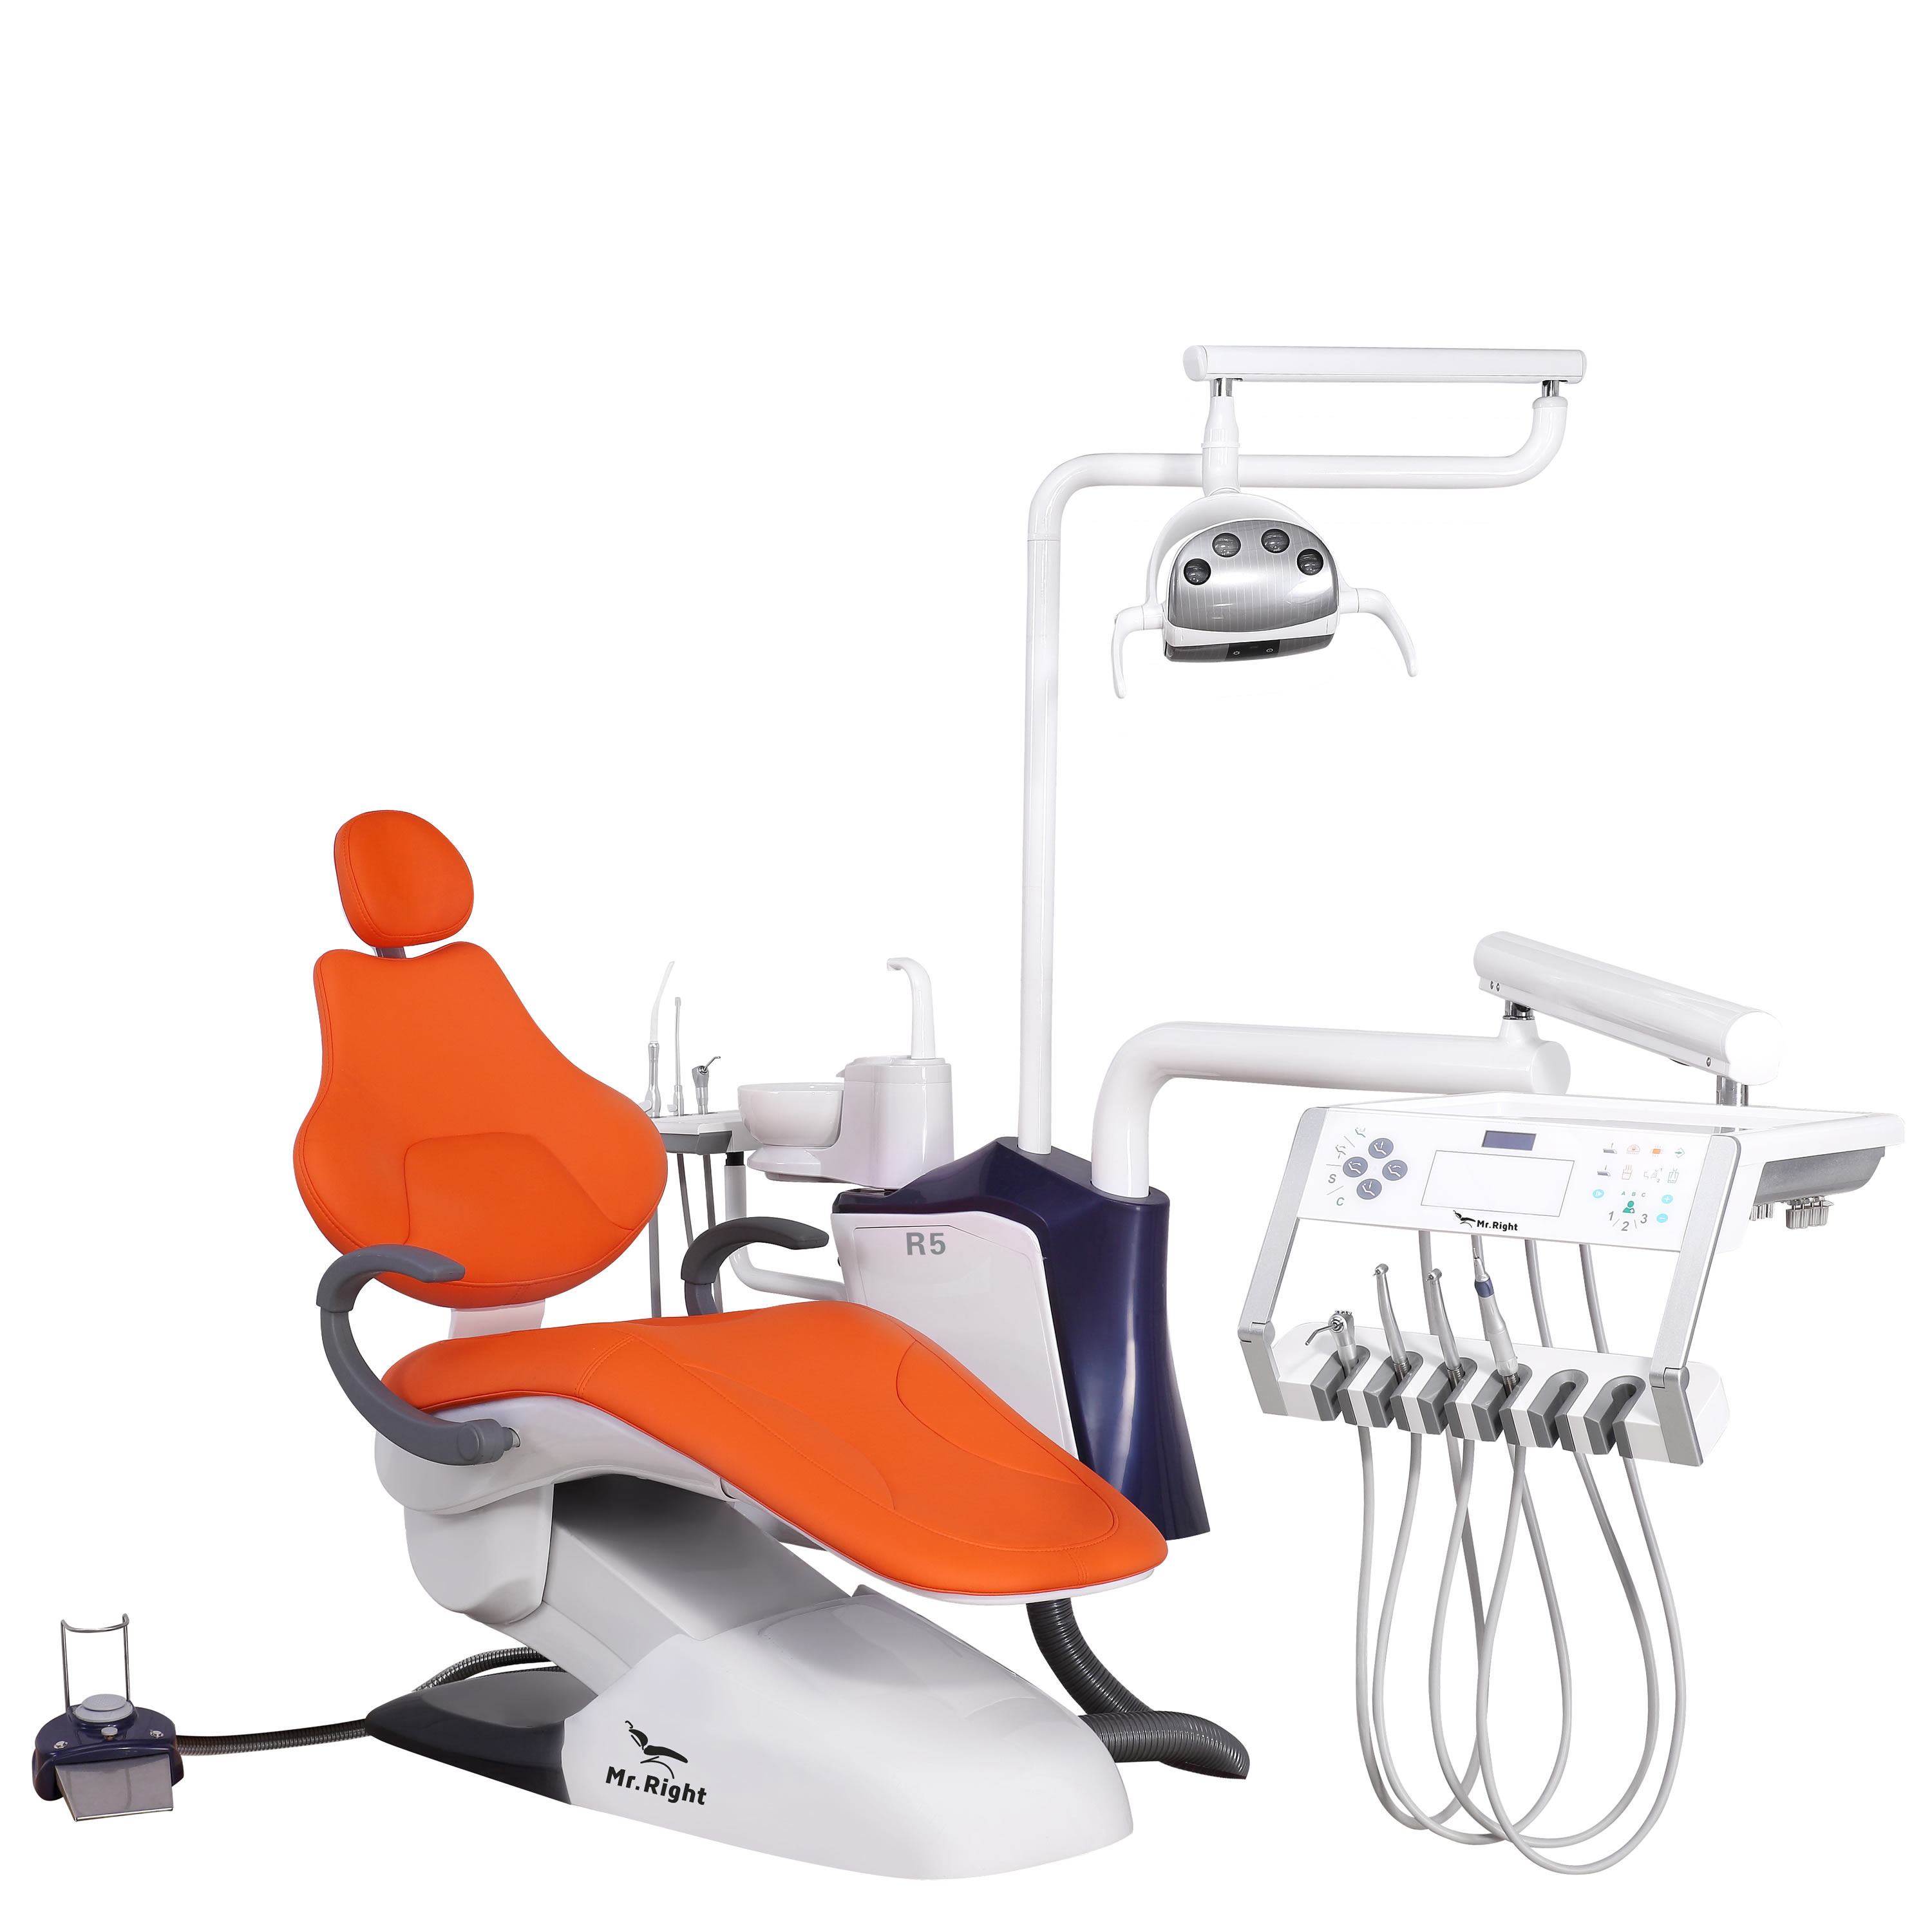 Mr Right R5 Dental Chair Build for Premium fort